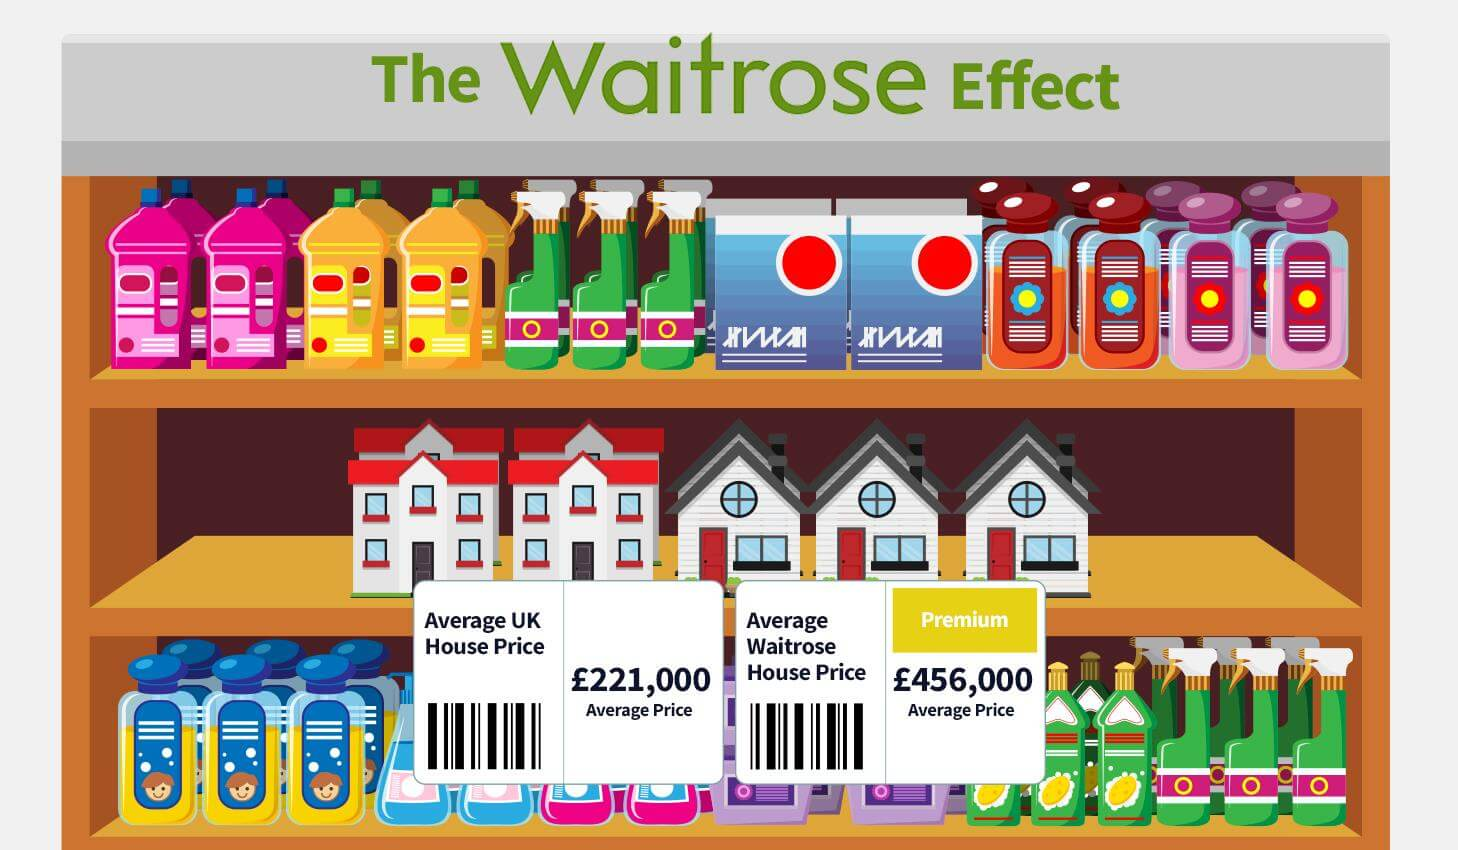 The Waitrose Effect: A Waitrose Supermarket Can Double Your Property Price